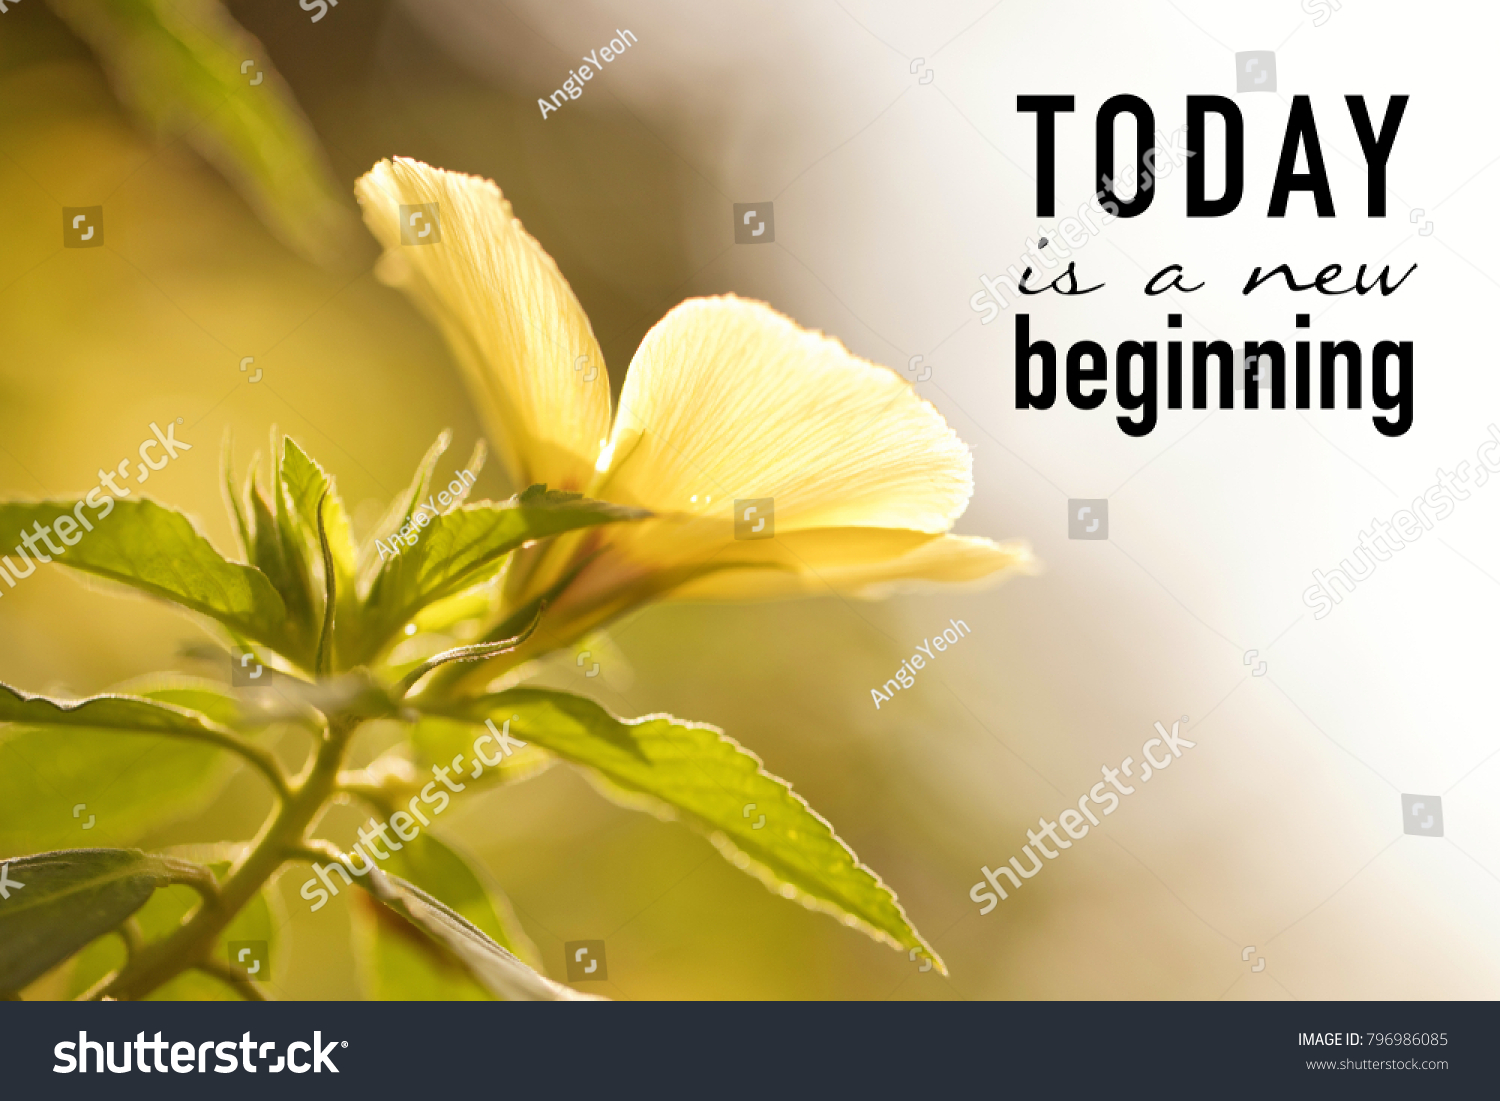 Inspirational Quote On Blurred Yellow Flower Stock Photo Edit Now